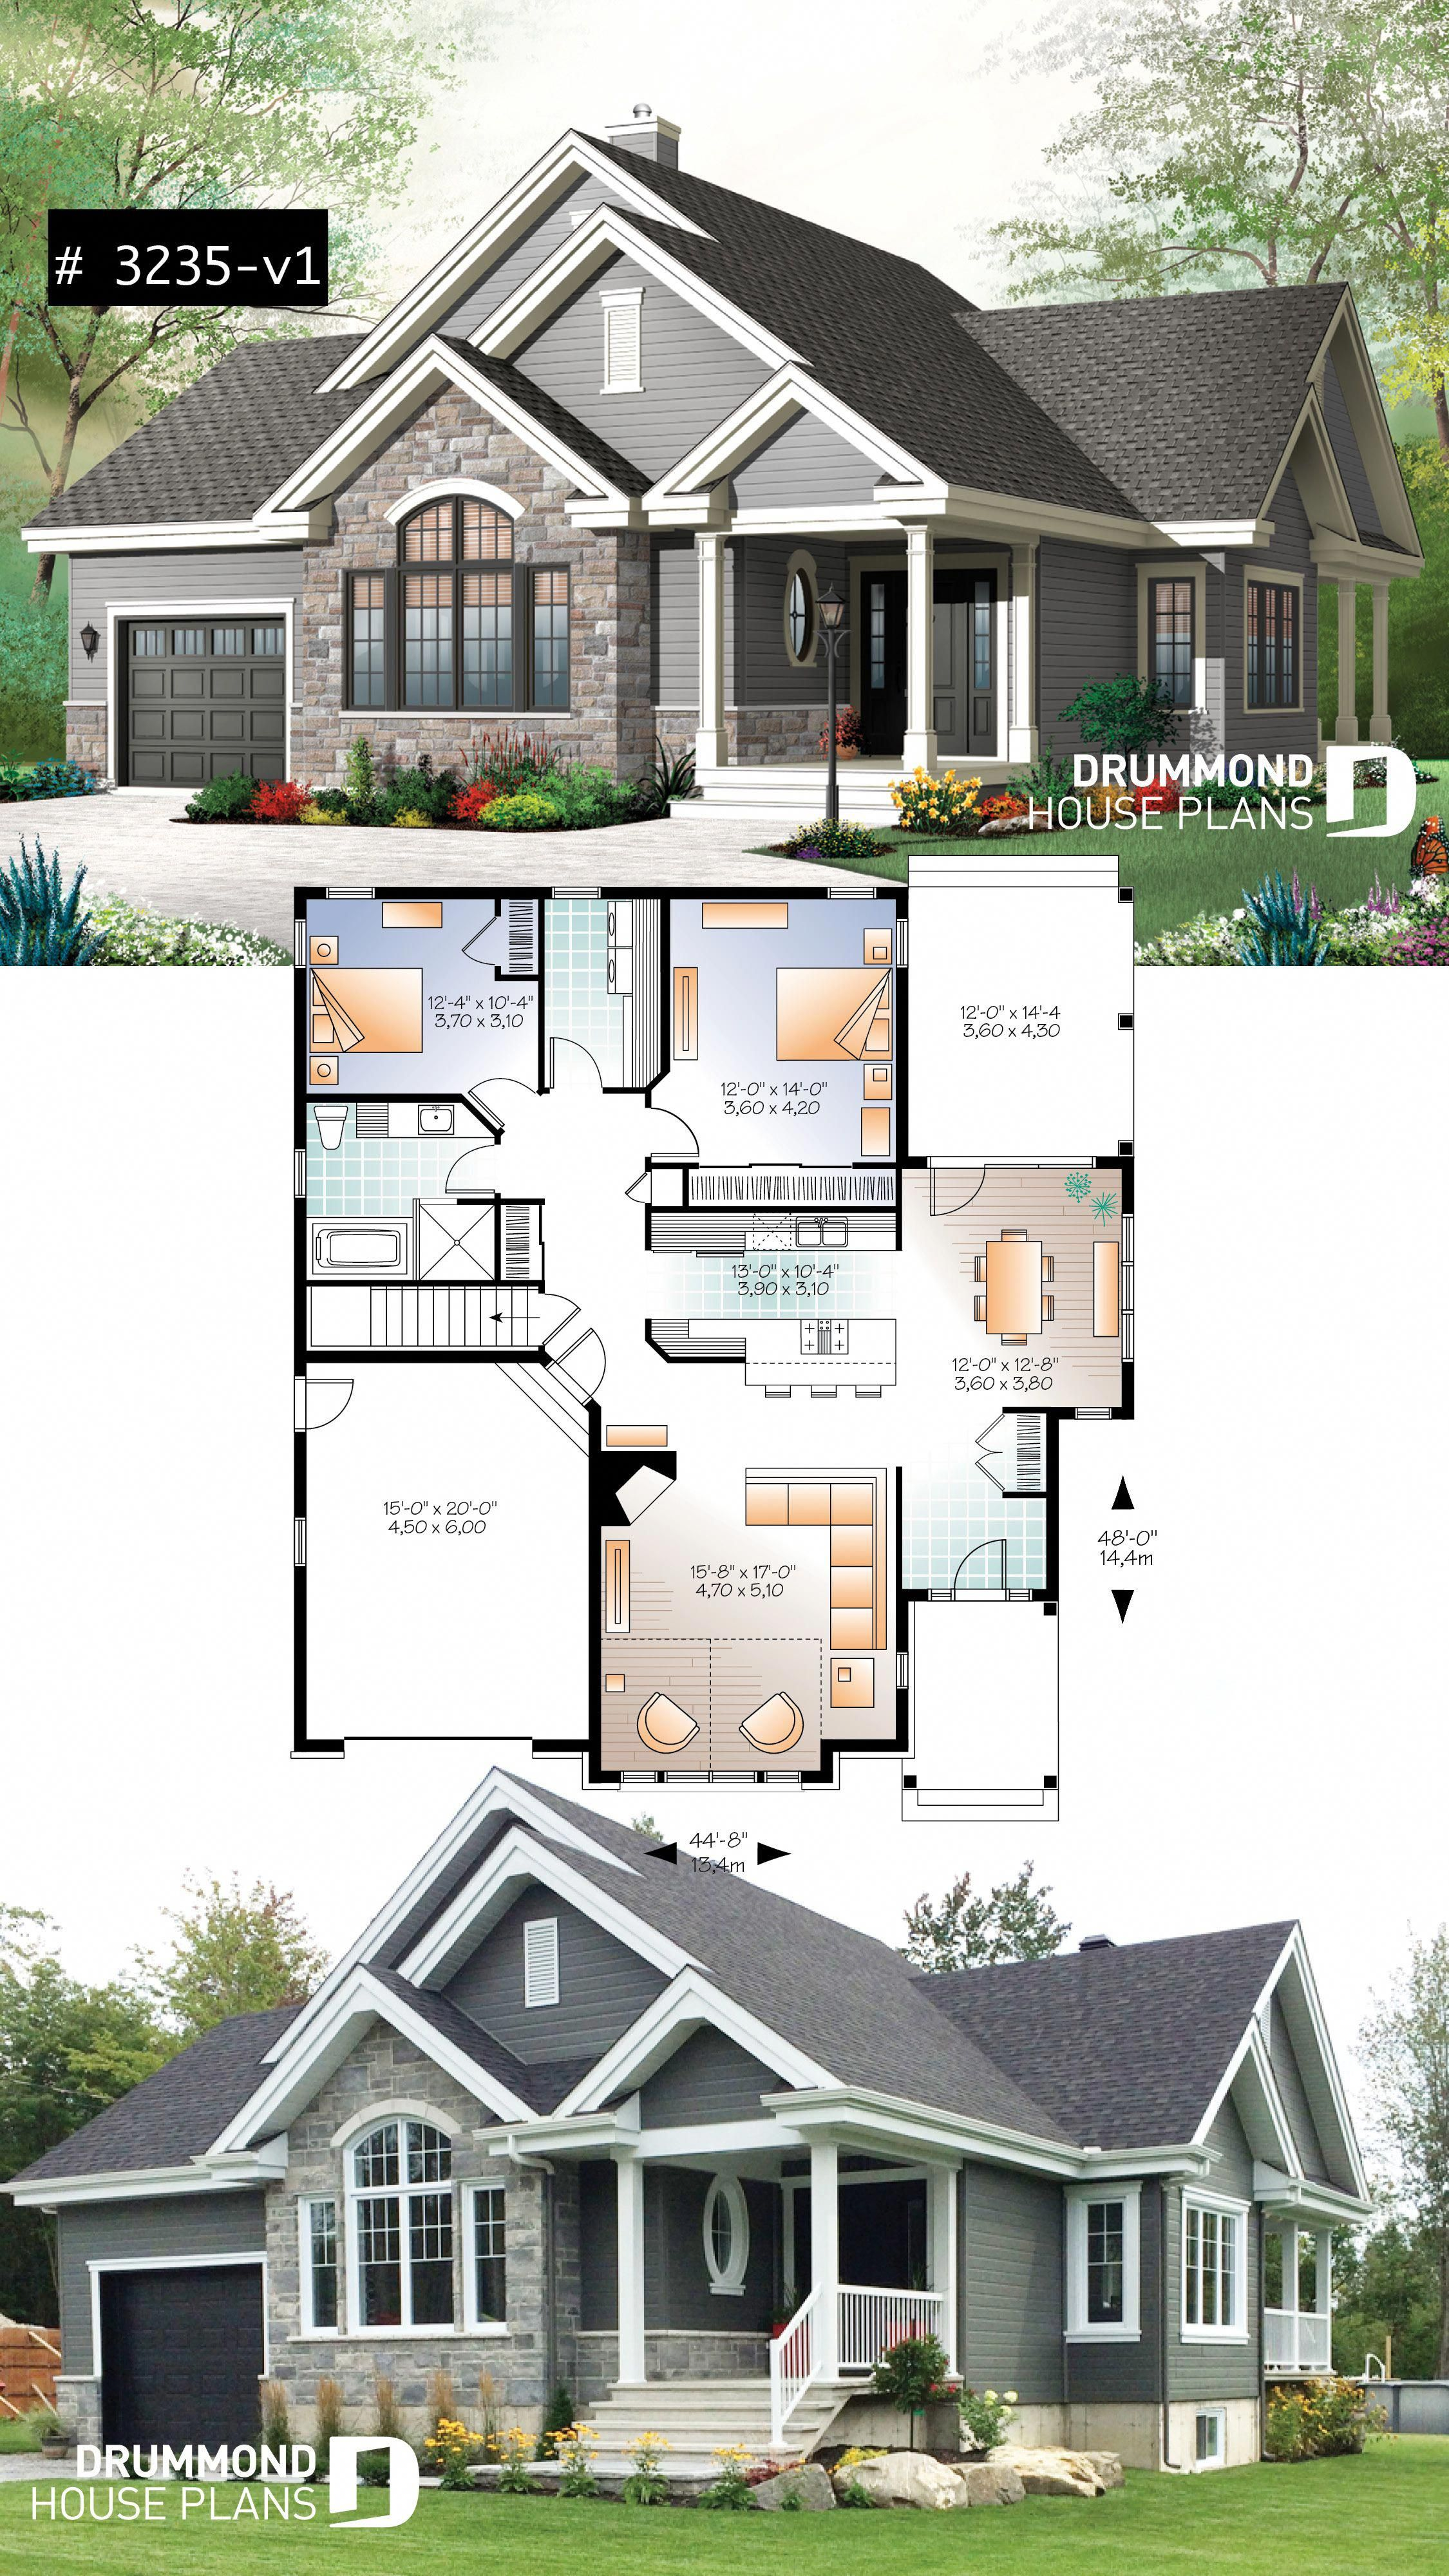 Ranch Bungalow House Plan With Galley Kitchen Open Floor Plan Concept Garage Many Foundation O Bungalow Floor Plans Bungalow House Plans Modern House Plans